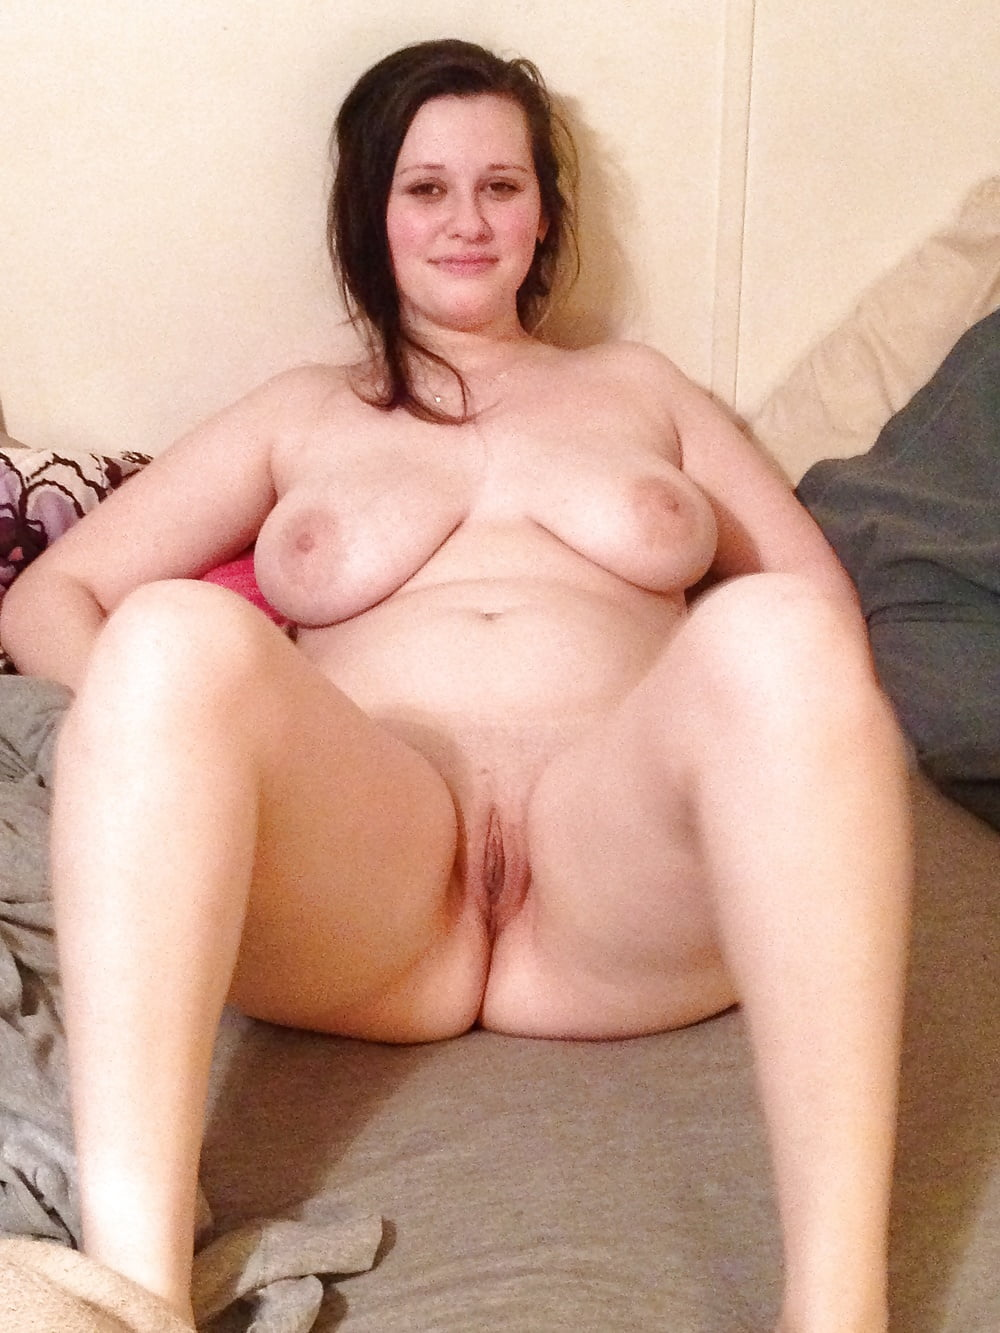 Amateur Chubby Slut Homemade